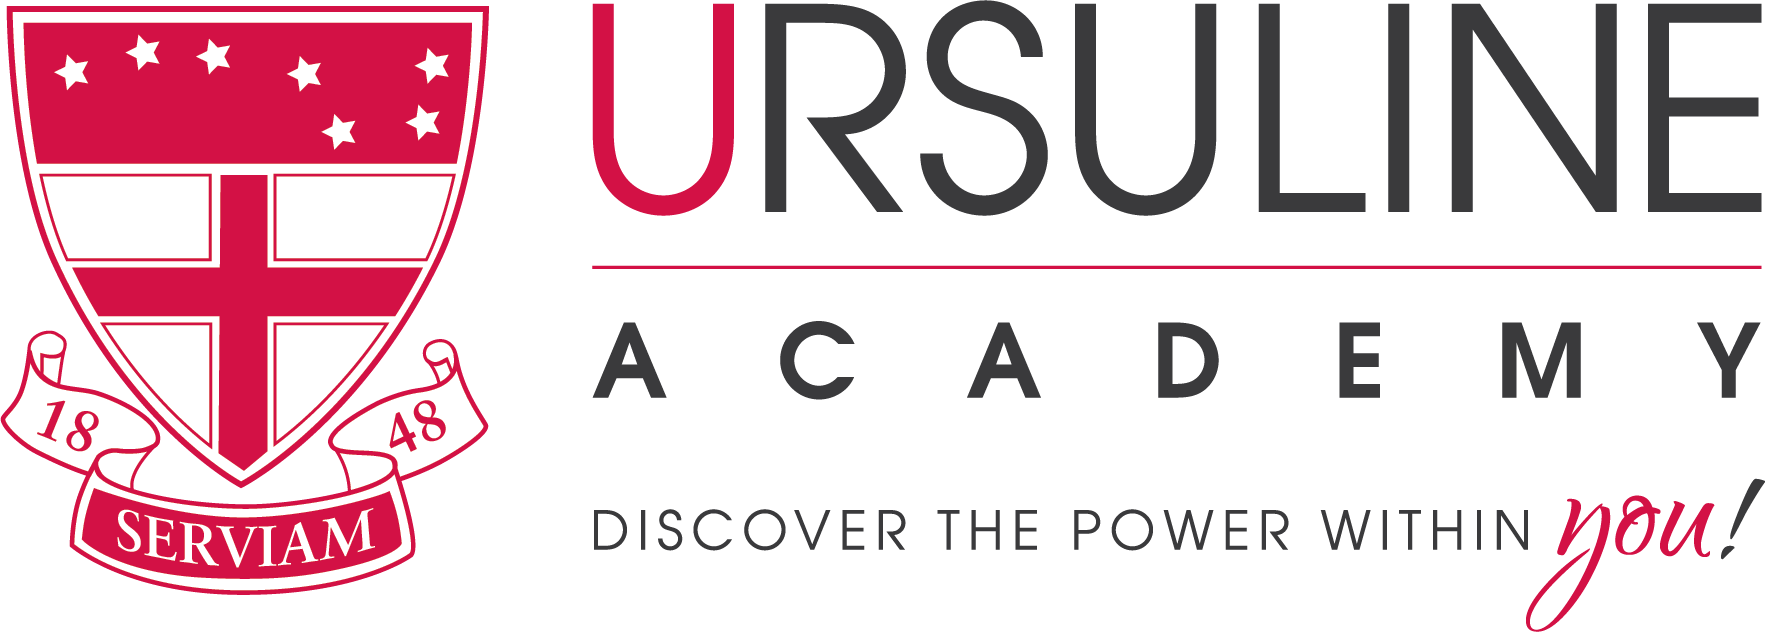 Ursuline logo horizontal with tagline cmyk